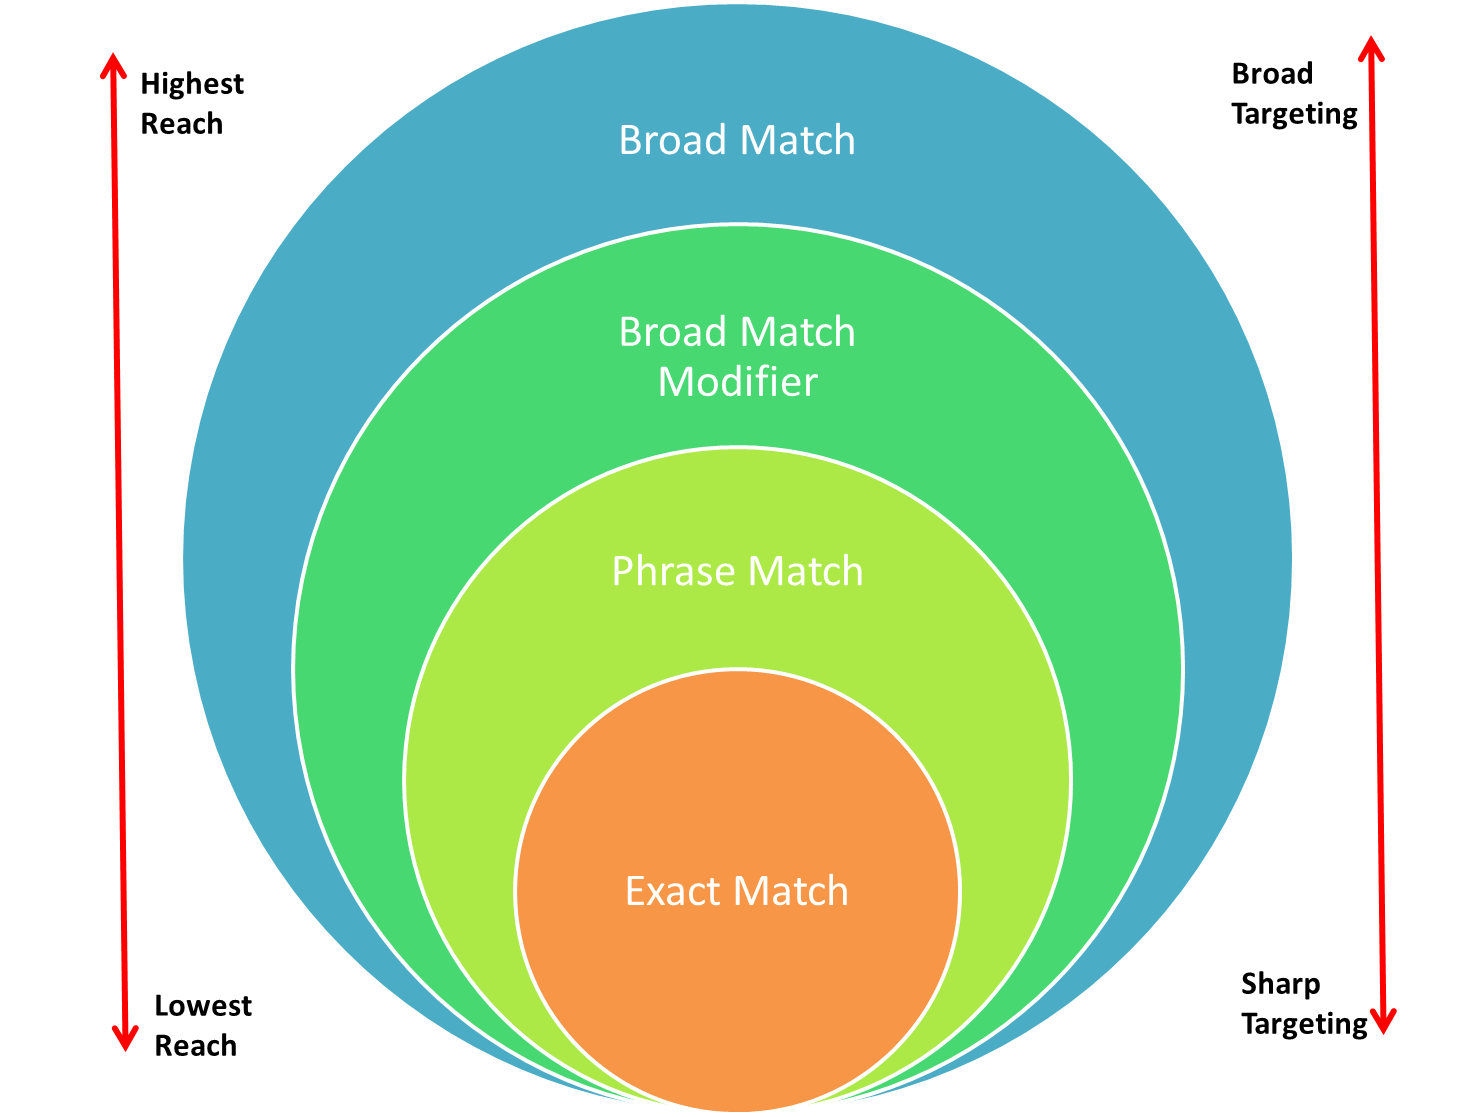 The colorful circle containing leads from broad match to exact match.